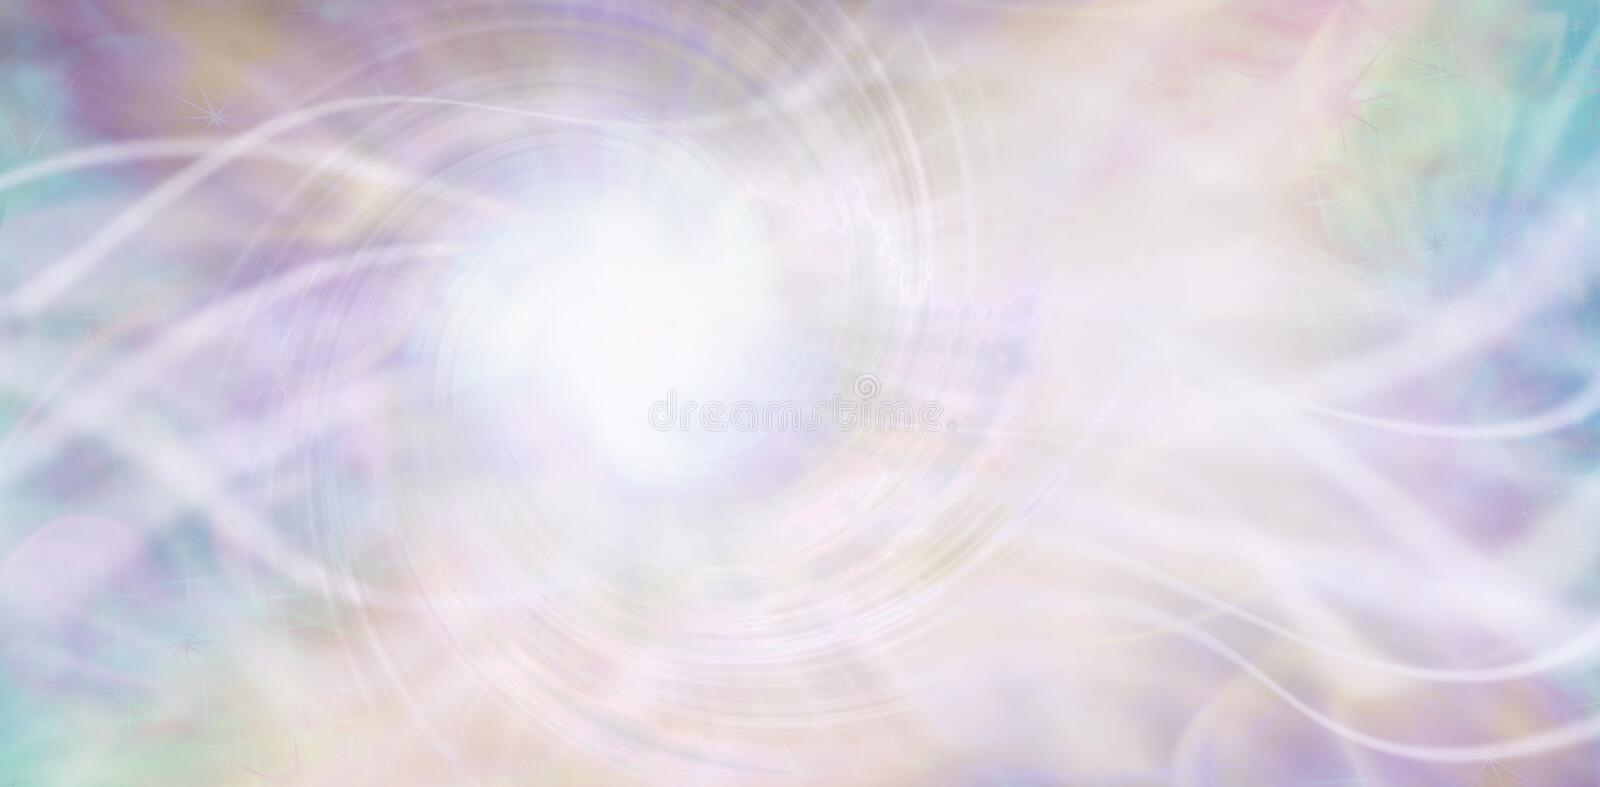 Streaming ethereal energy background vector illustration